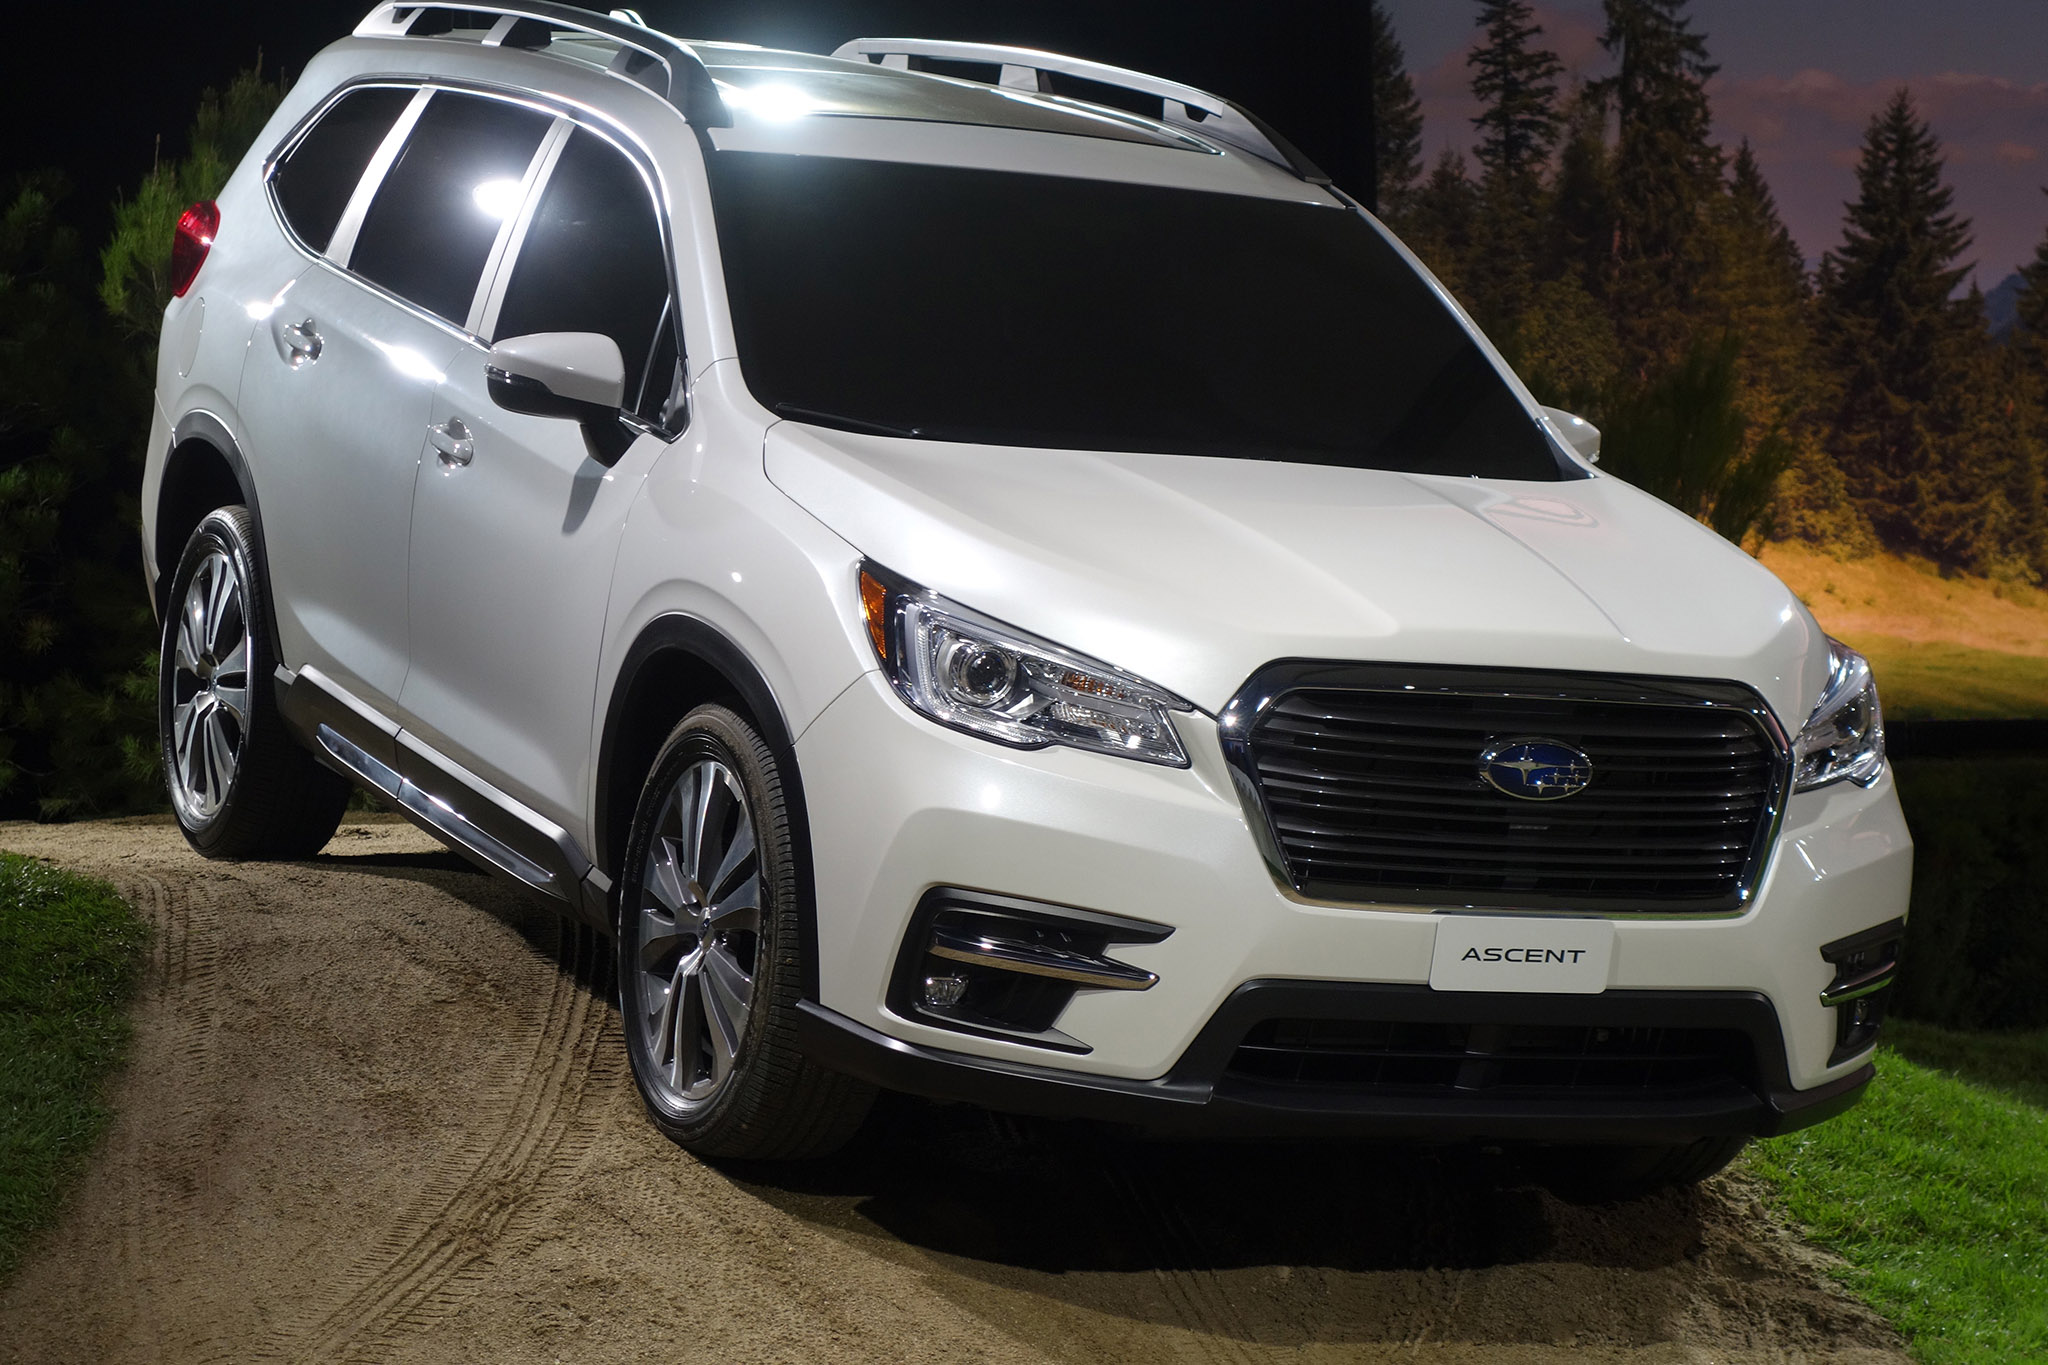 2019 subaru ascent arrives with 19 cupholders automobile magazine